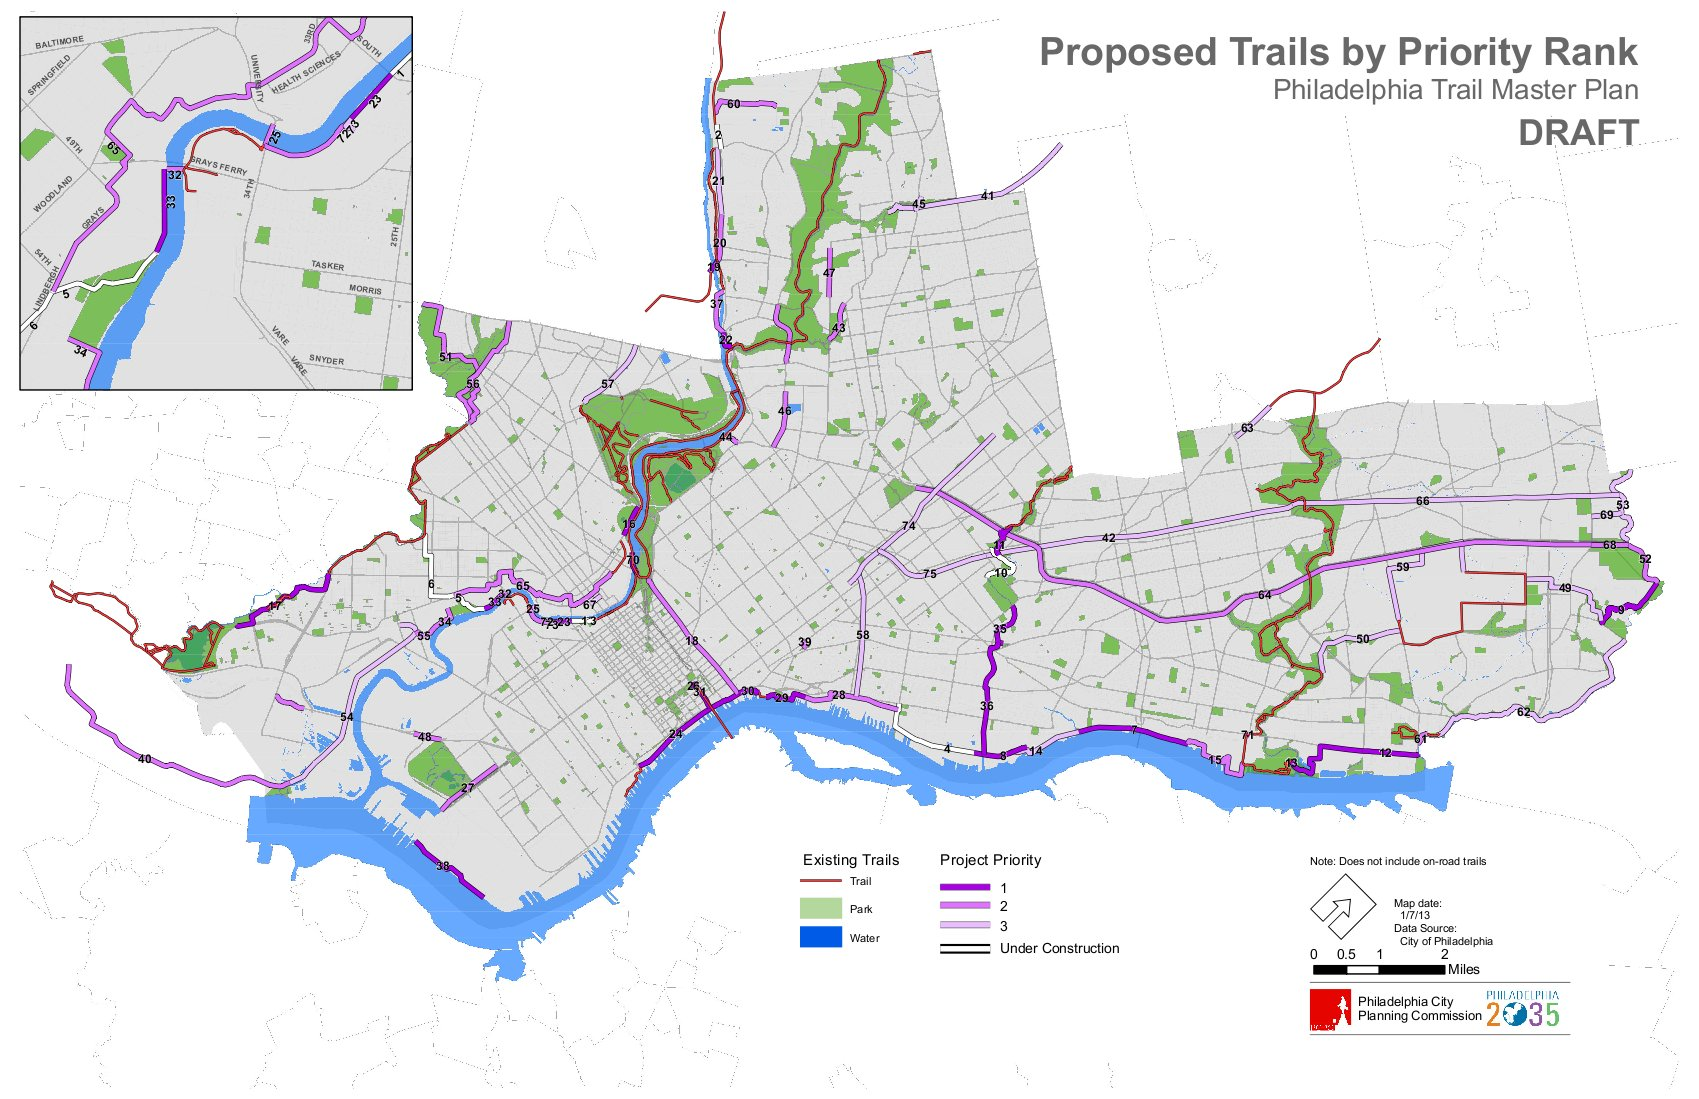 Philadelphia Trail Master Plan Draft Priority Map